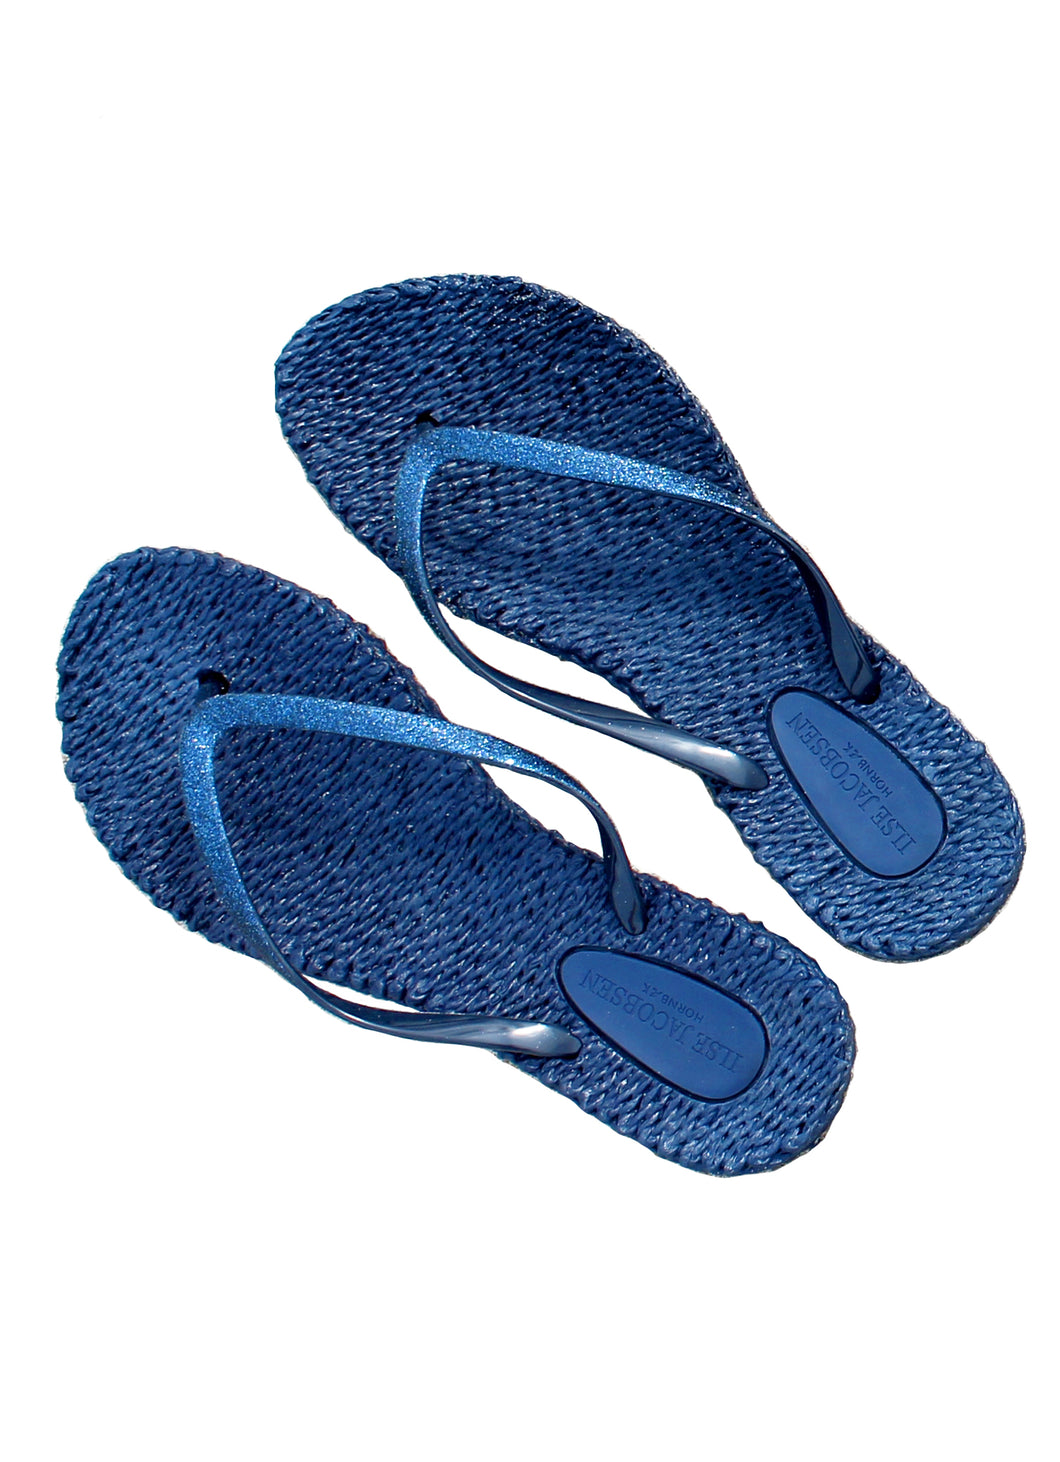 Cheerful Flipflops